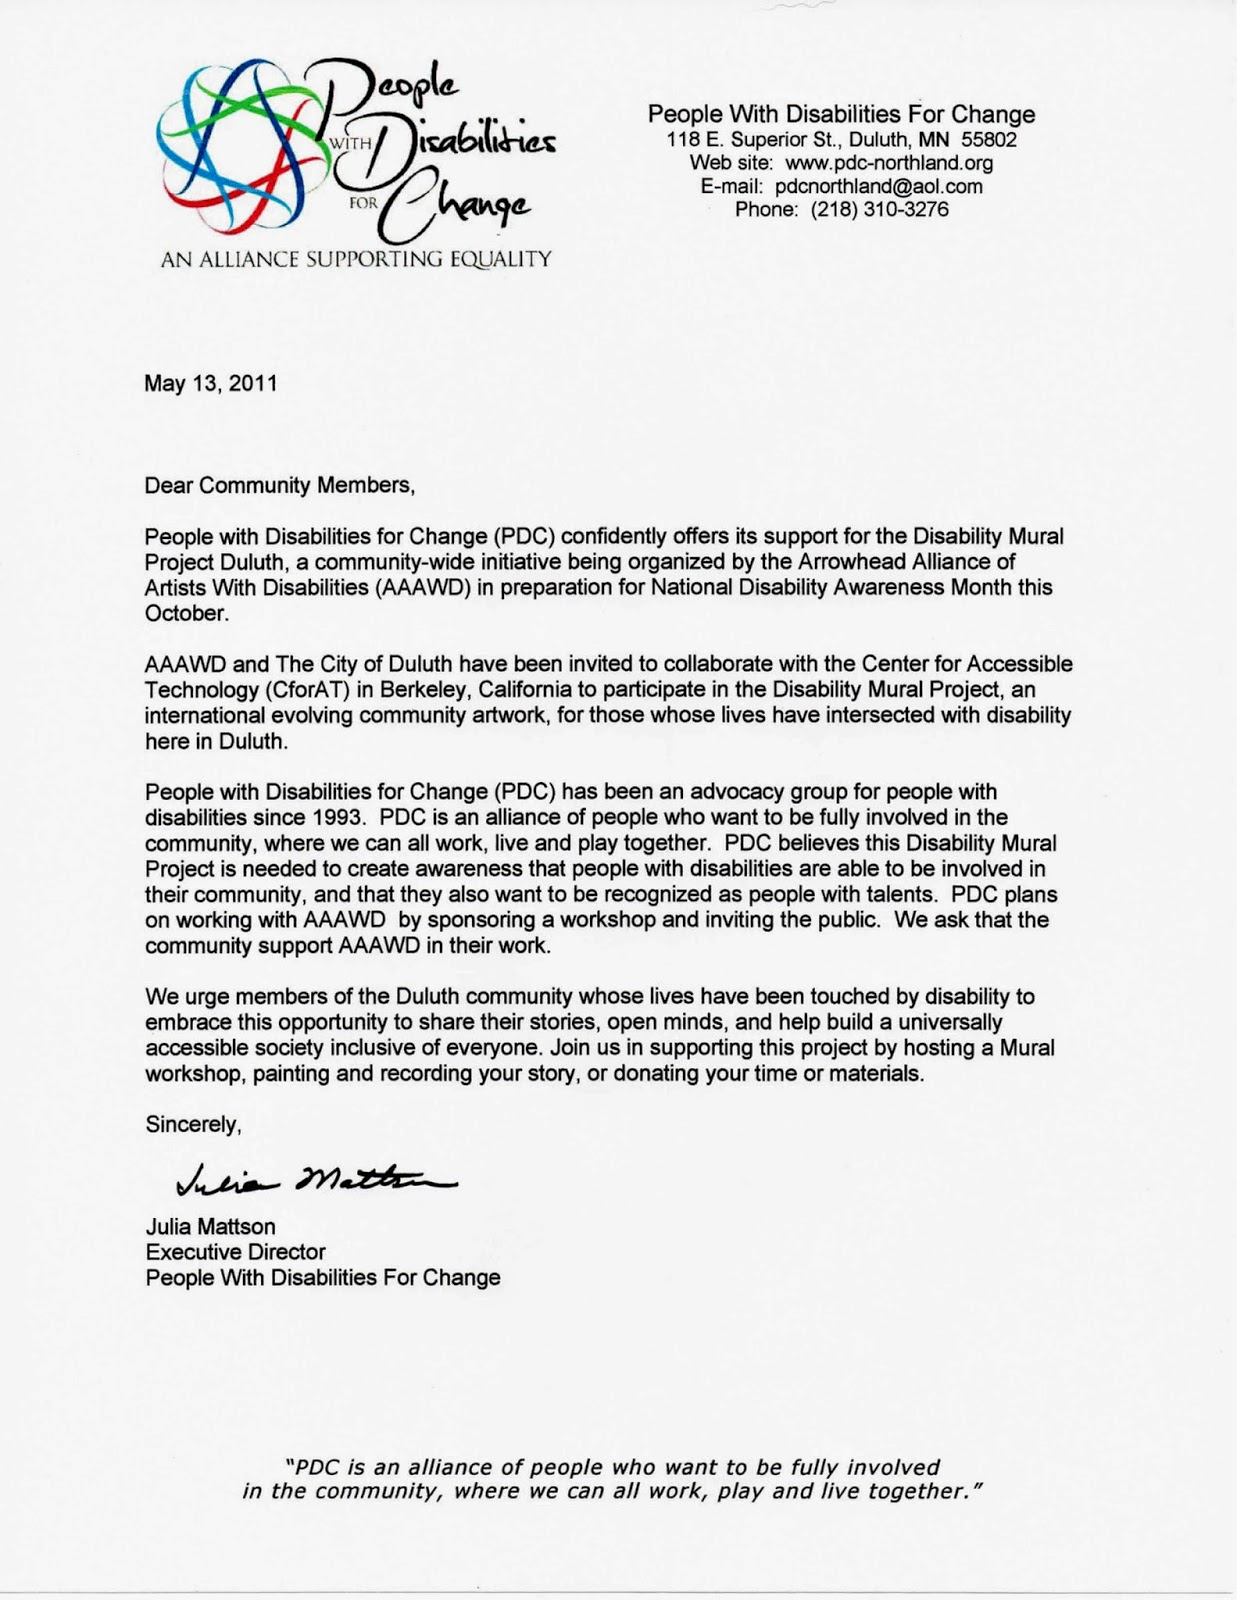 letter of support from people with disabilities for change pdc